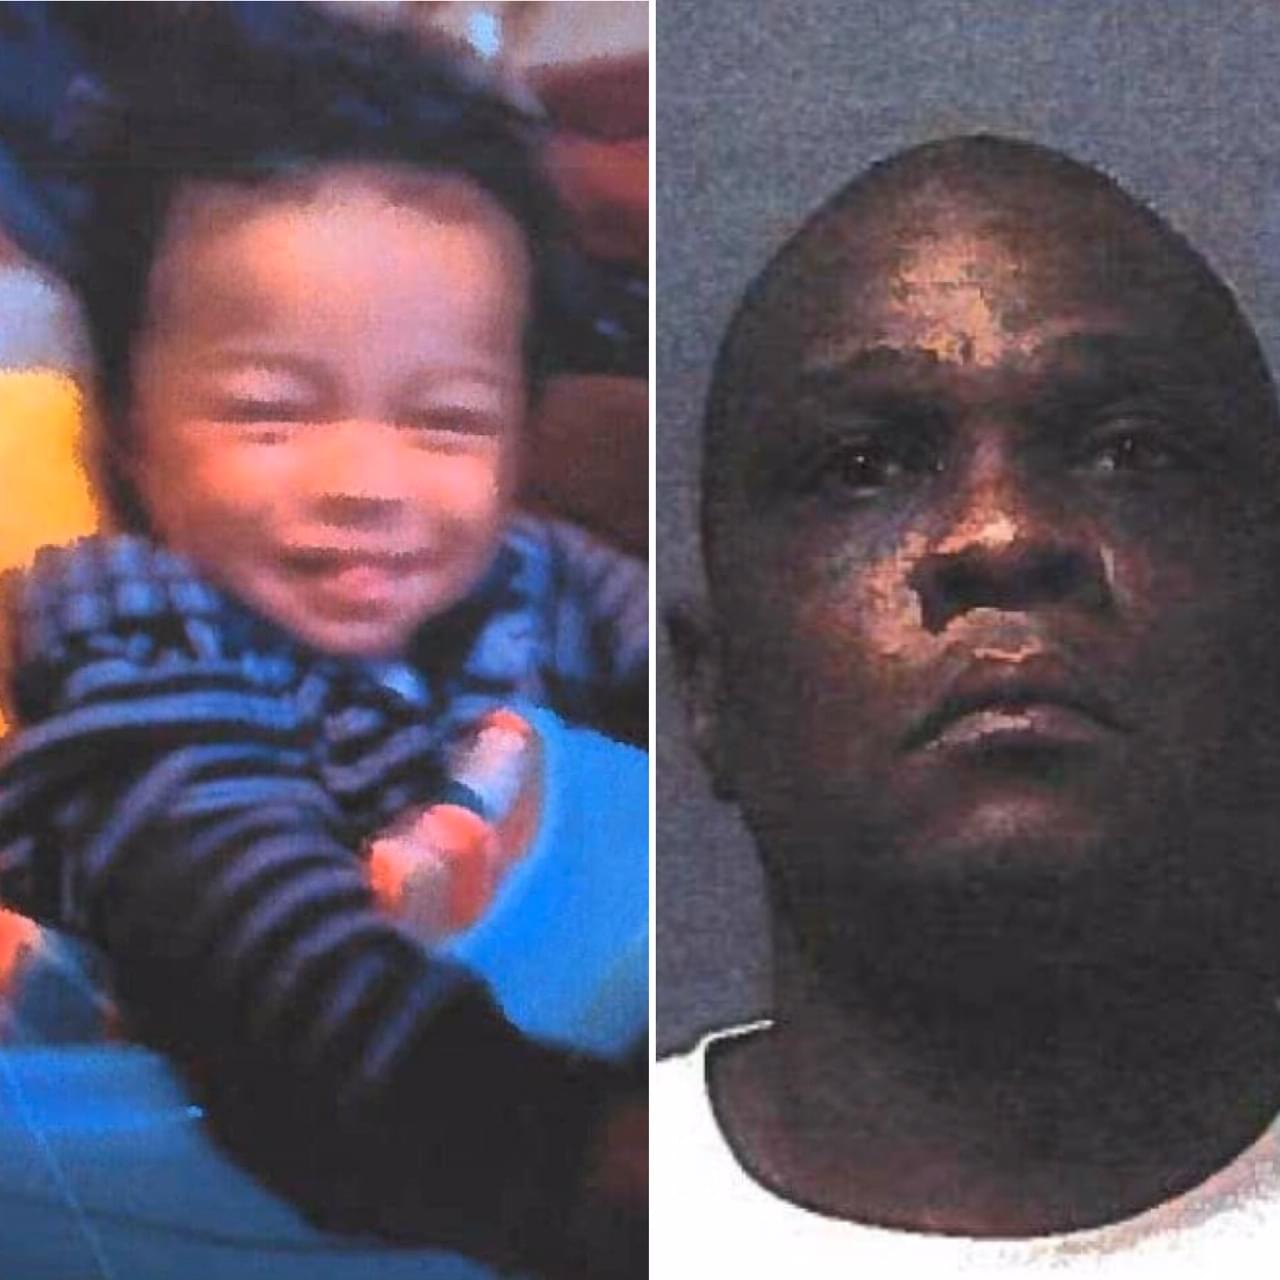 Missing 4-Month Old Baby & Kidnap Suspect Found in Lemoore